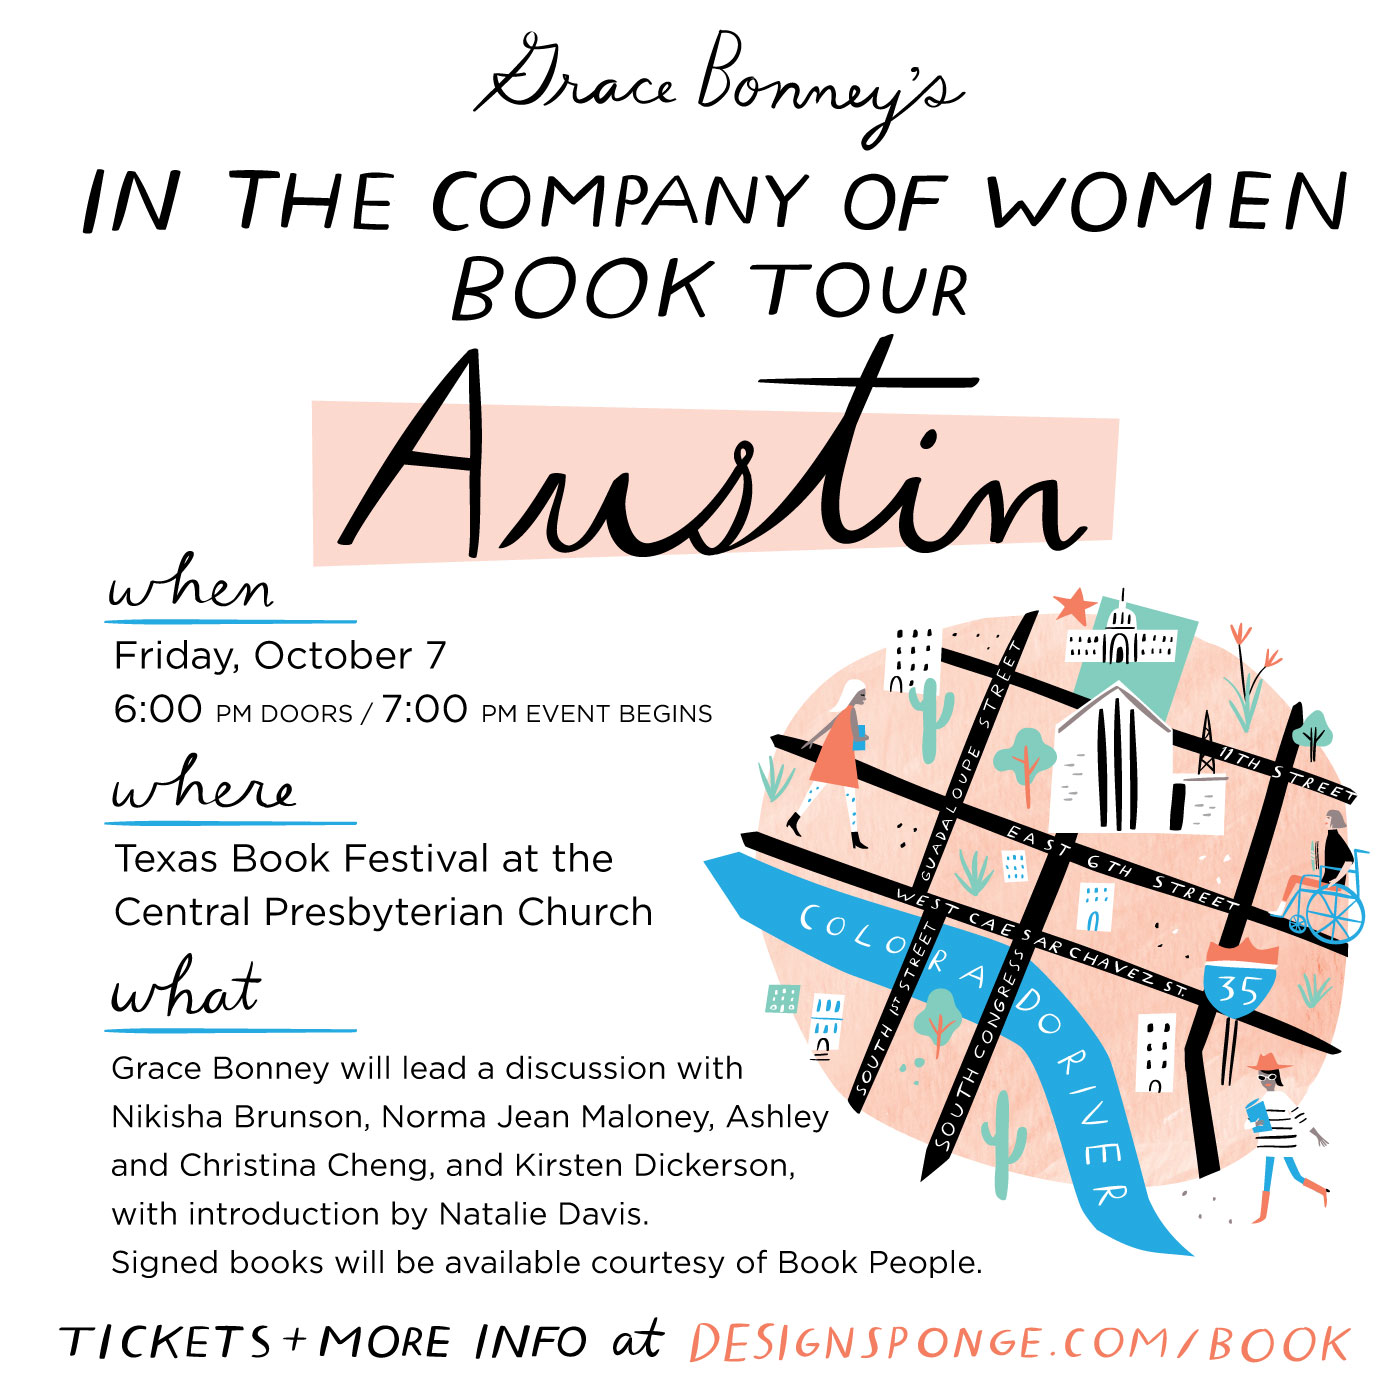 itcow_booktour_promos_cities_austin